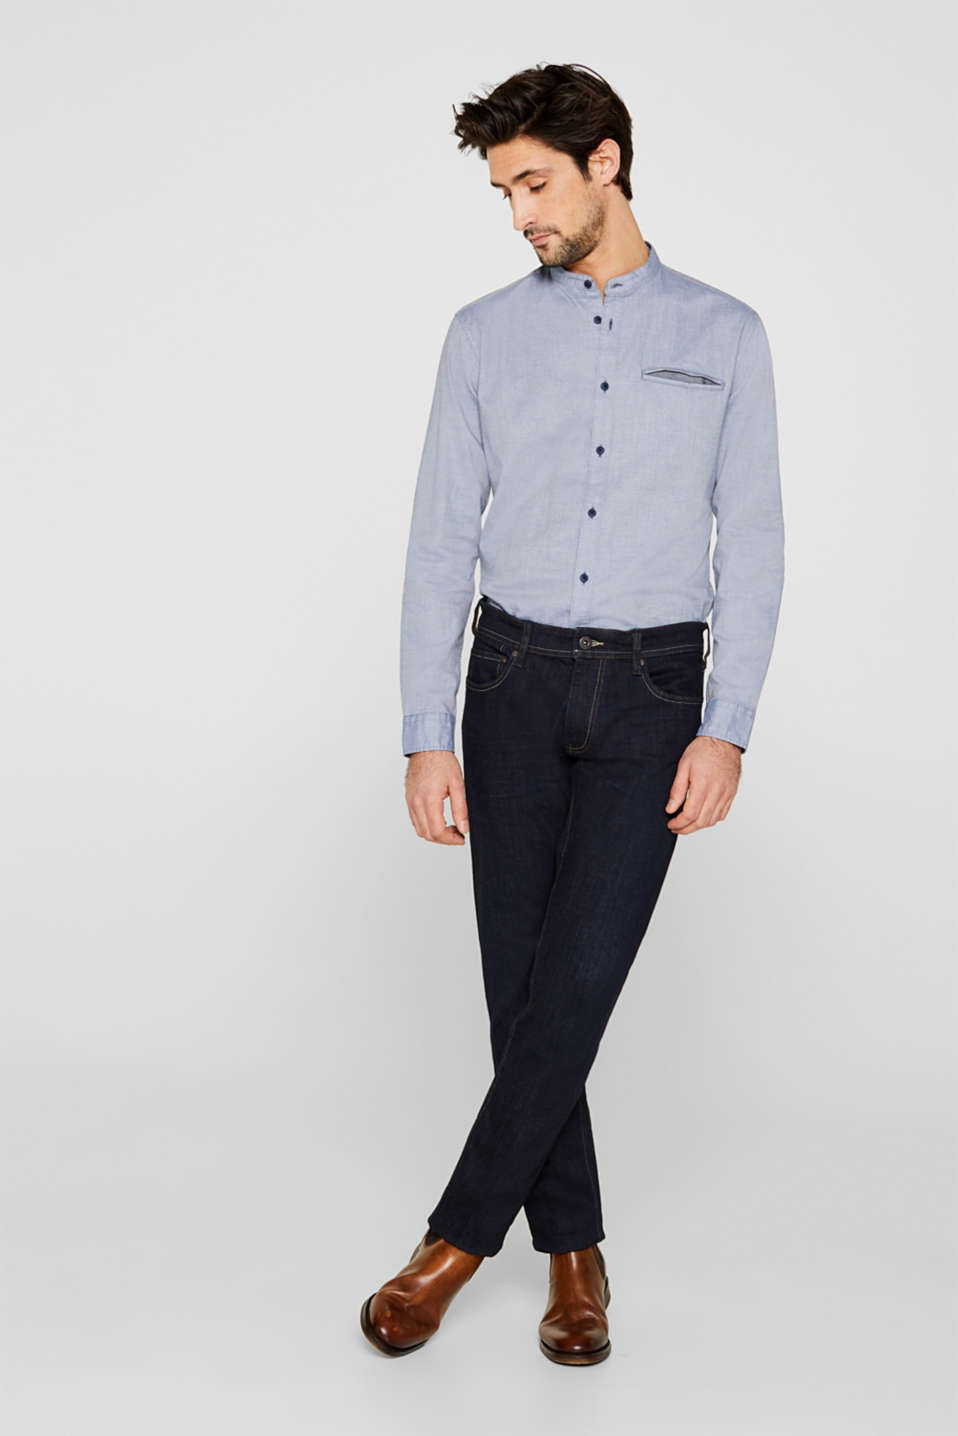 Shirts woven Slim fit, GREY BLUE 5, detail image number 0